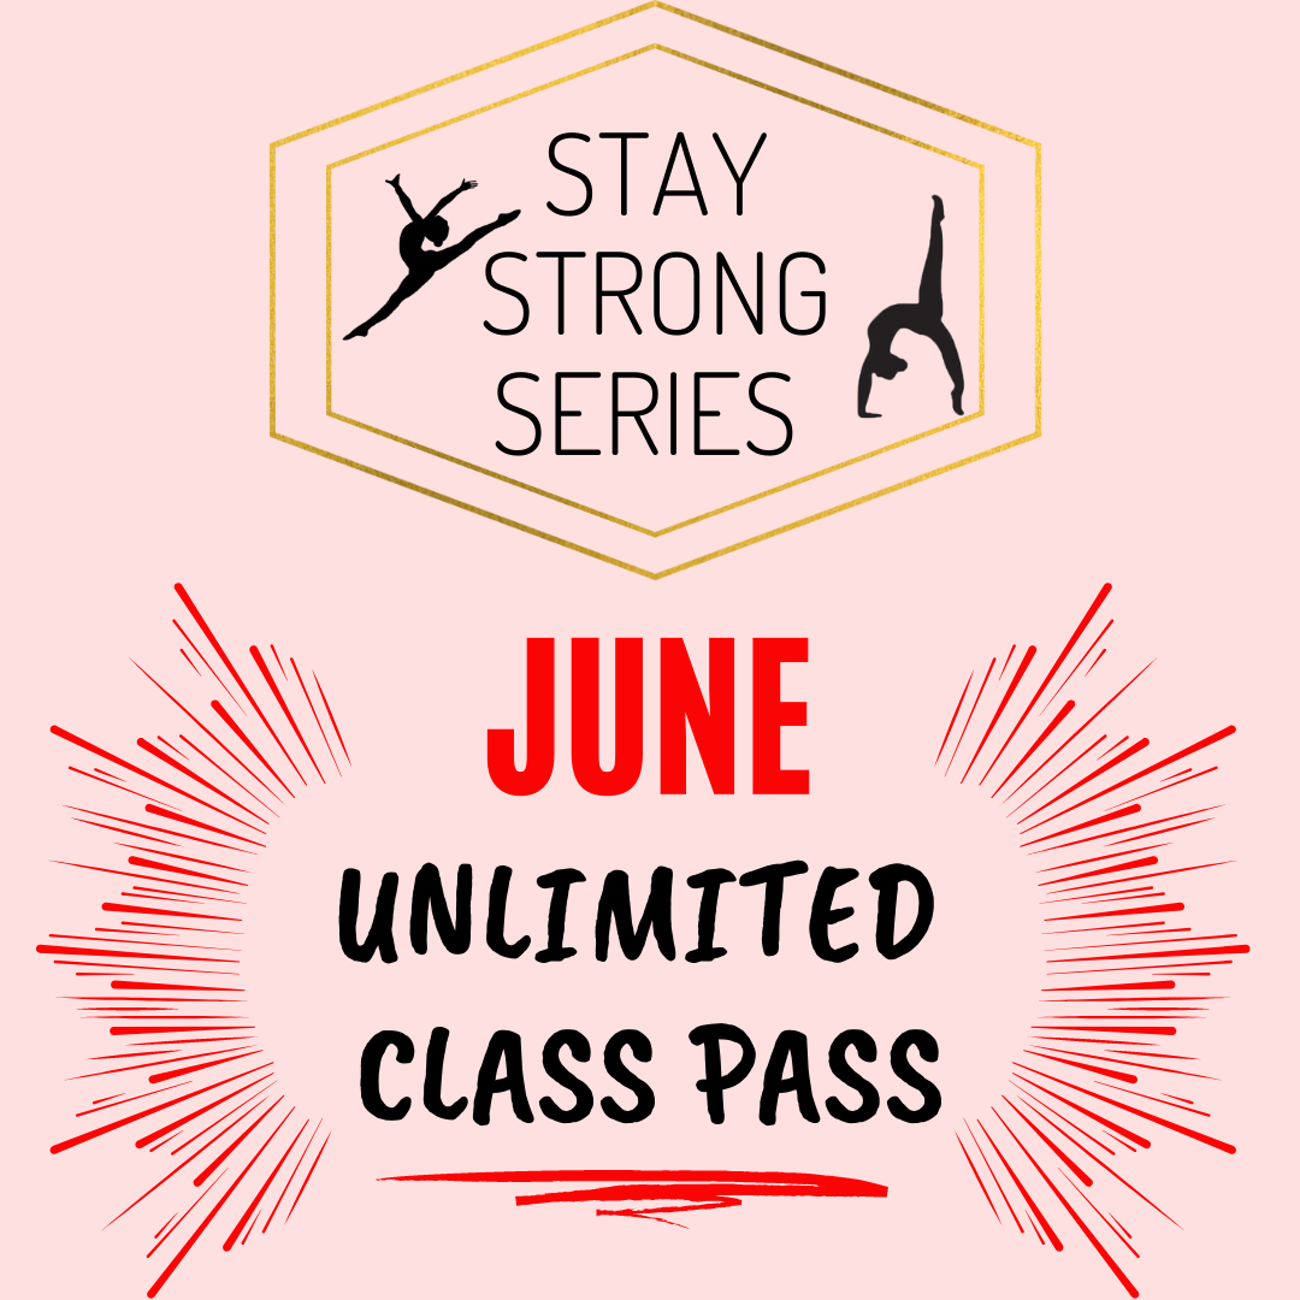 JUNE UNLIMITED CLASS PASS **Stay Strong Series**